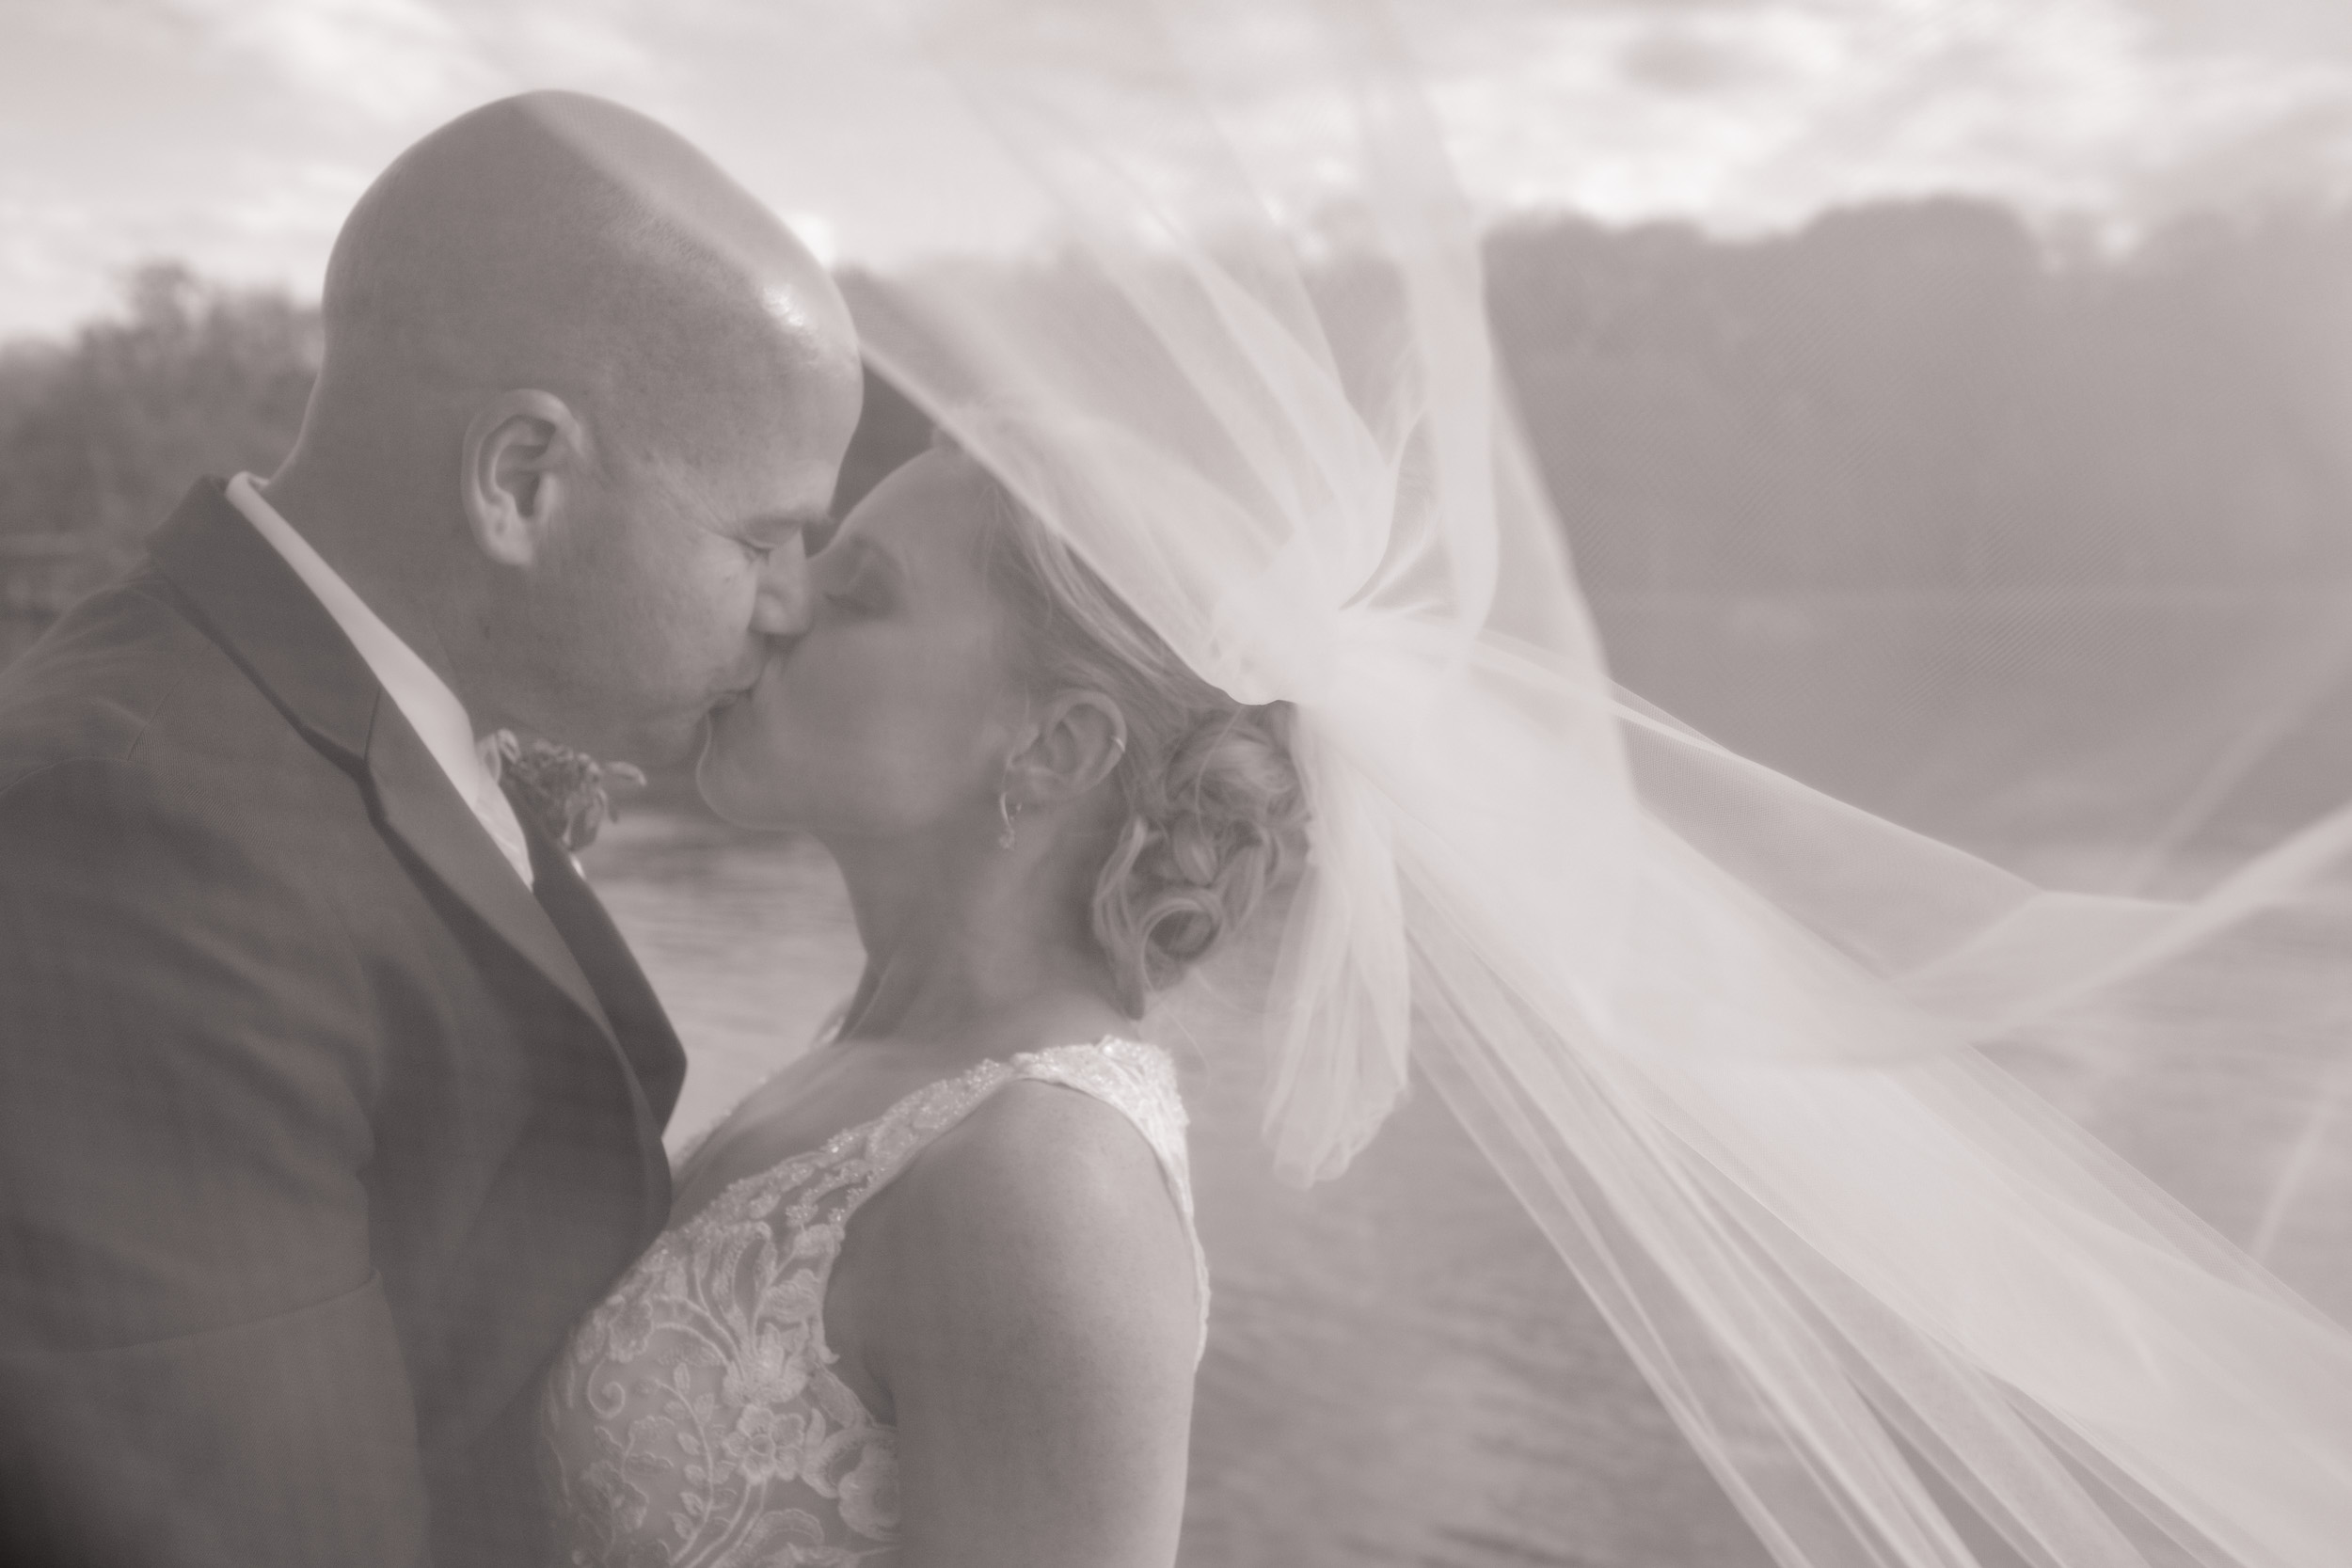 laughing portrait on wedding day with long veil blowing in the wind at the brix